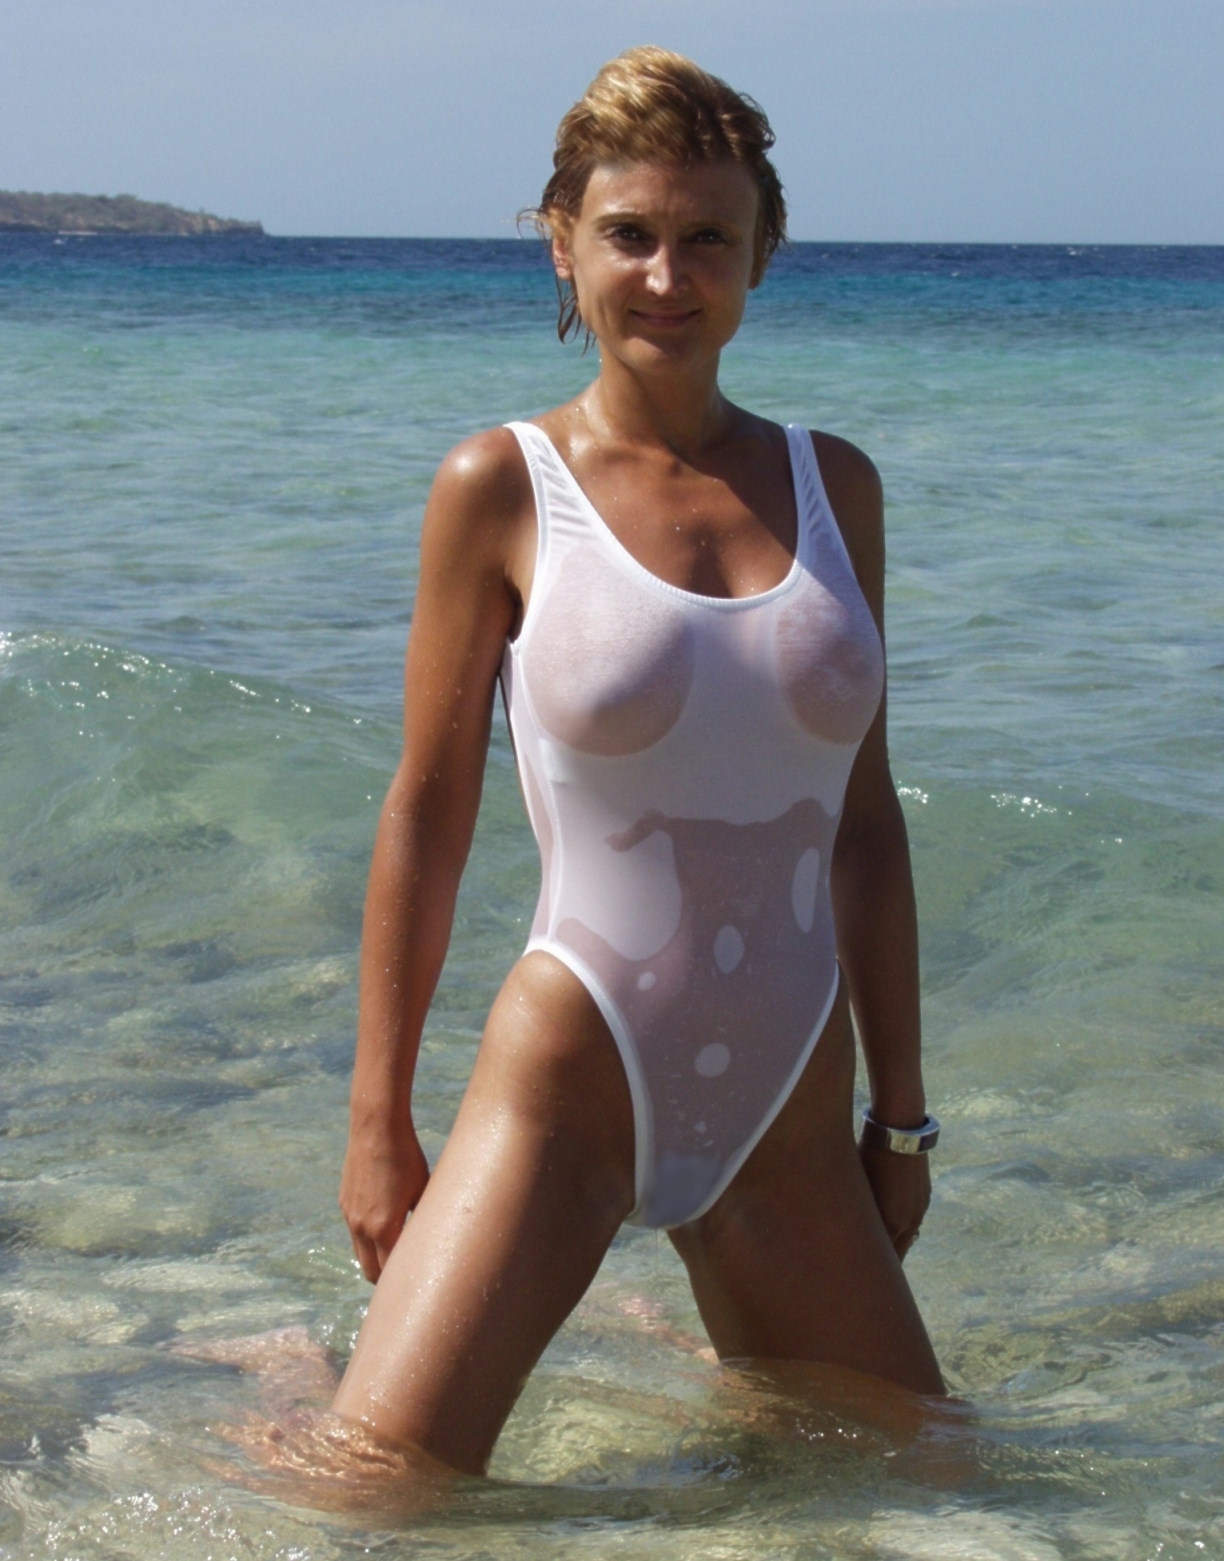 Sheer One Piece Bathing Suits Sheer 2scoops One Piece